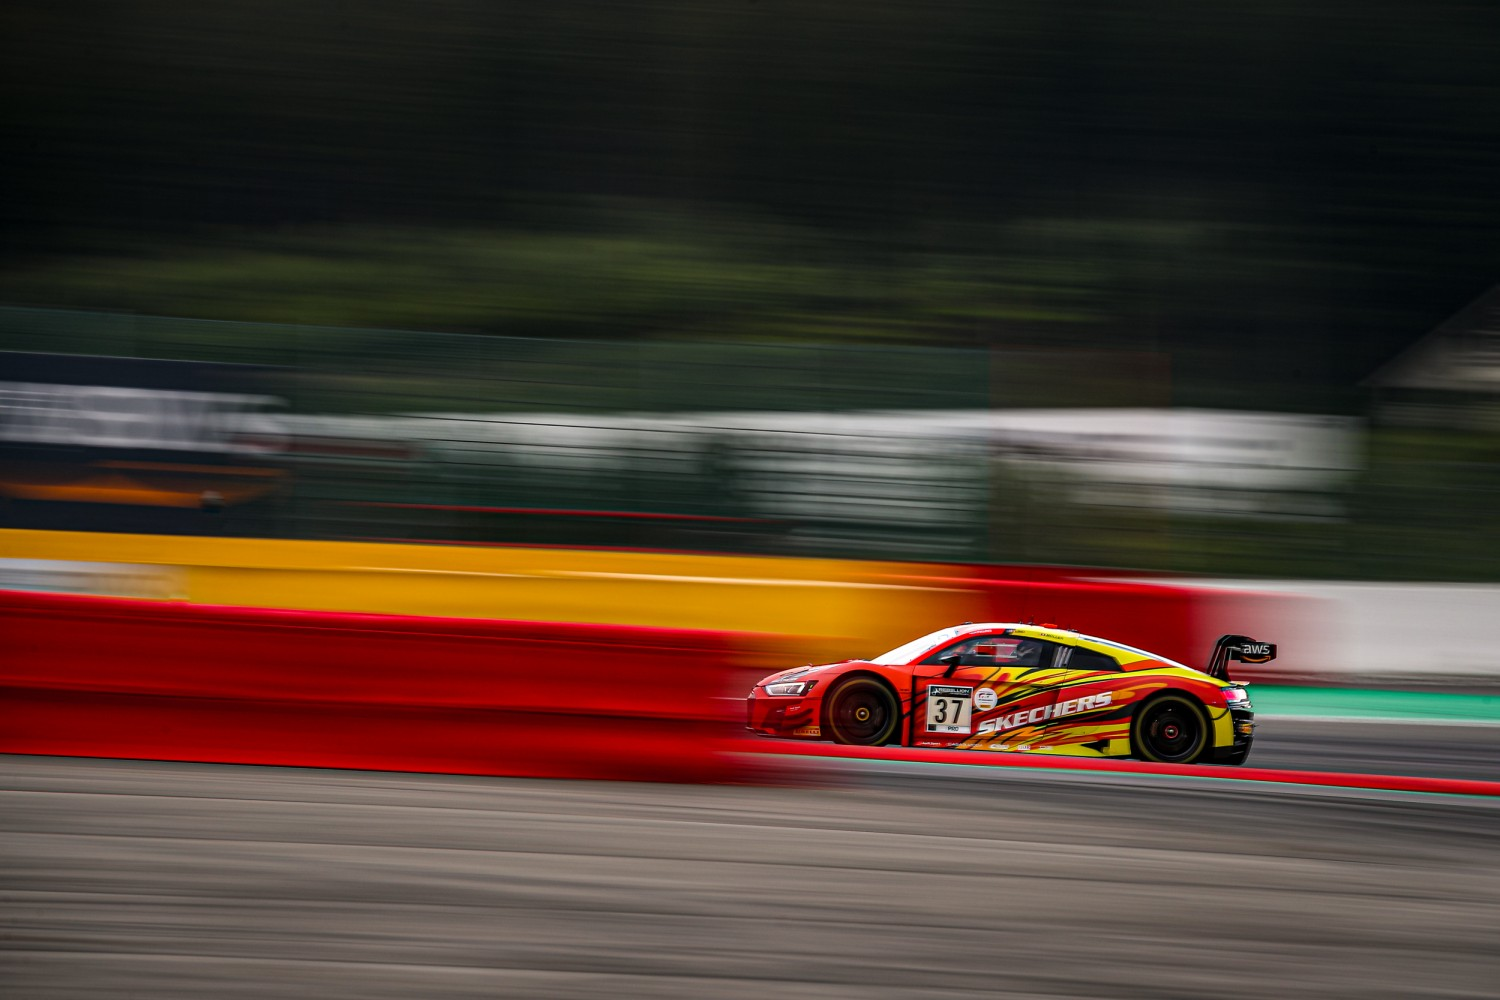 2-Hour Update: Heavens open as racing resumes at Spa-Francorchamps